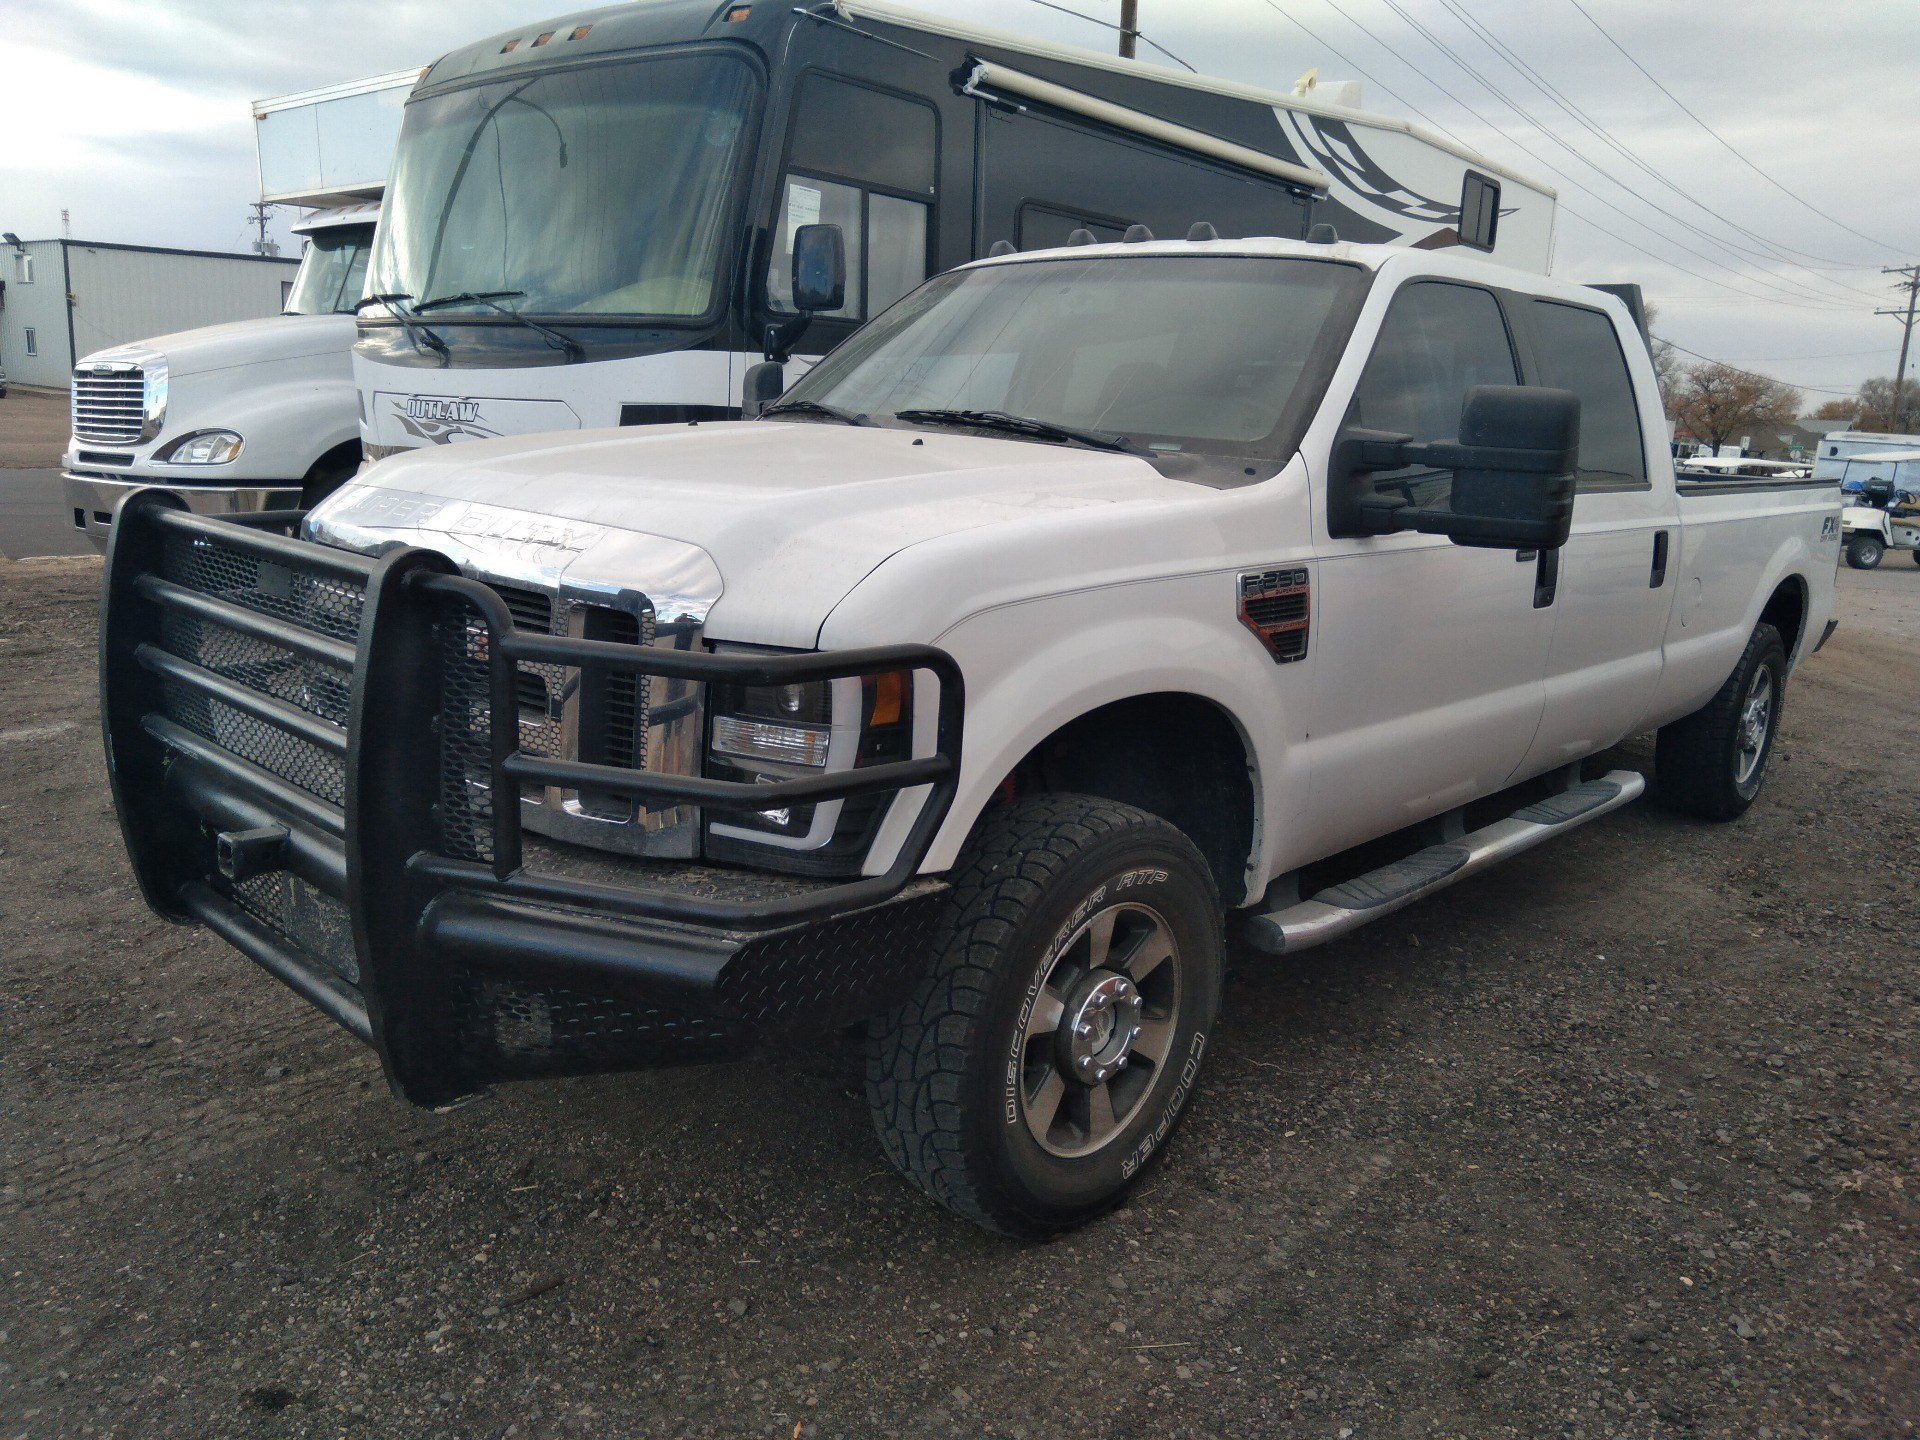 2010 Ford F-250 SUPER DUTY XLT 4X4 in Sterling, Colorado - Photo 1